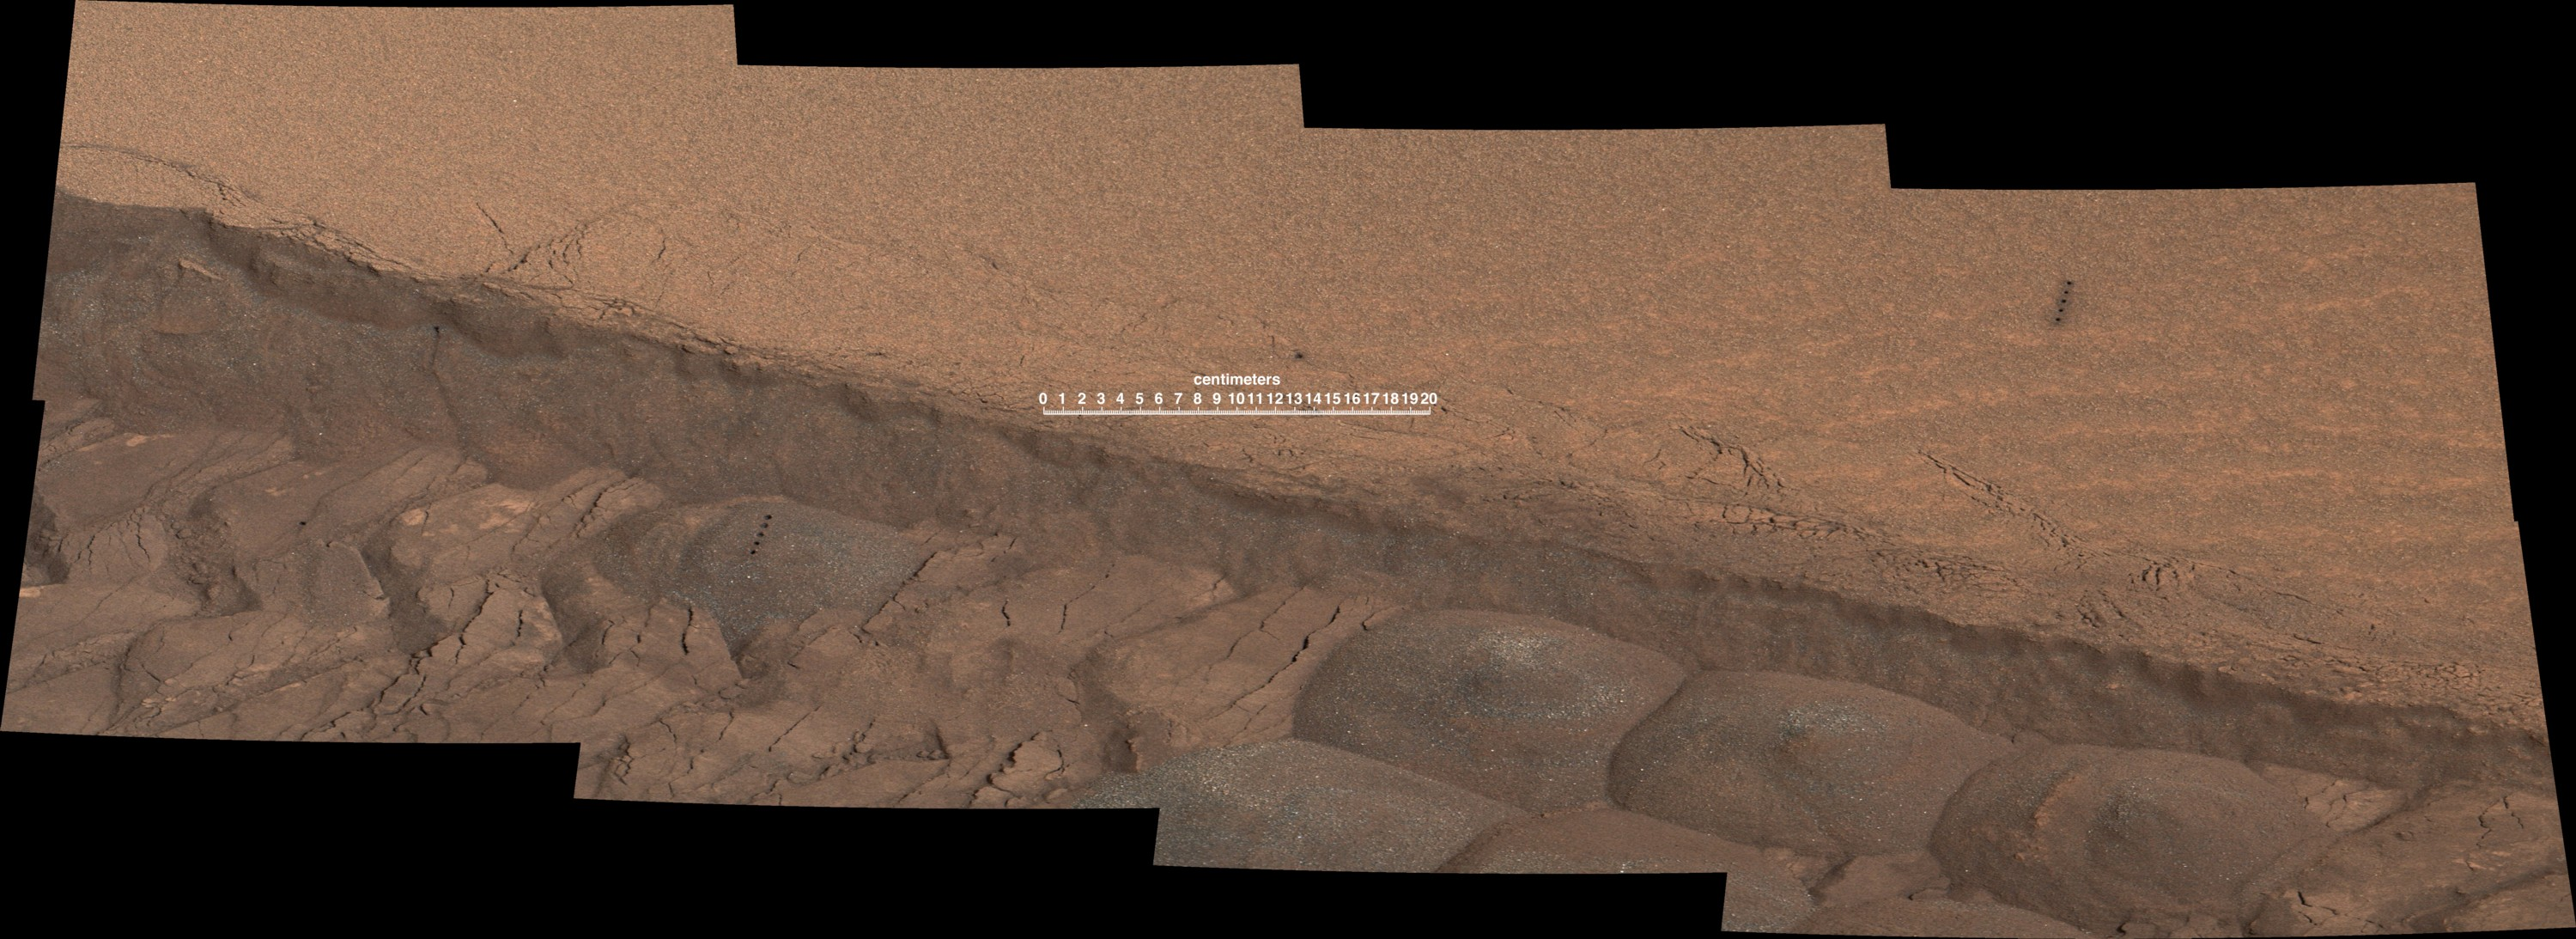 mars-curiosity-rover-lazer-shots-wheel-tracks-labeled-pia18882-full r